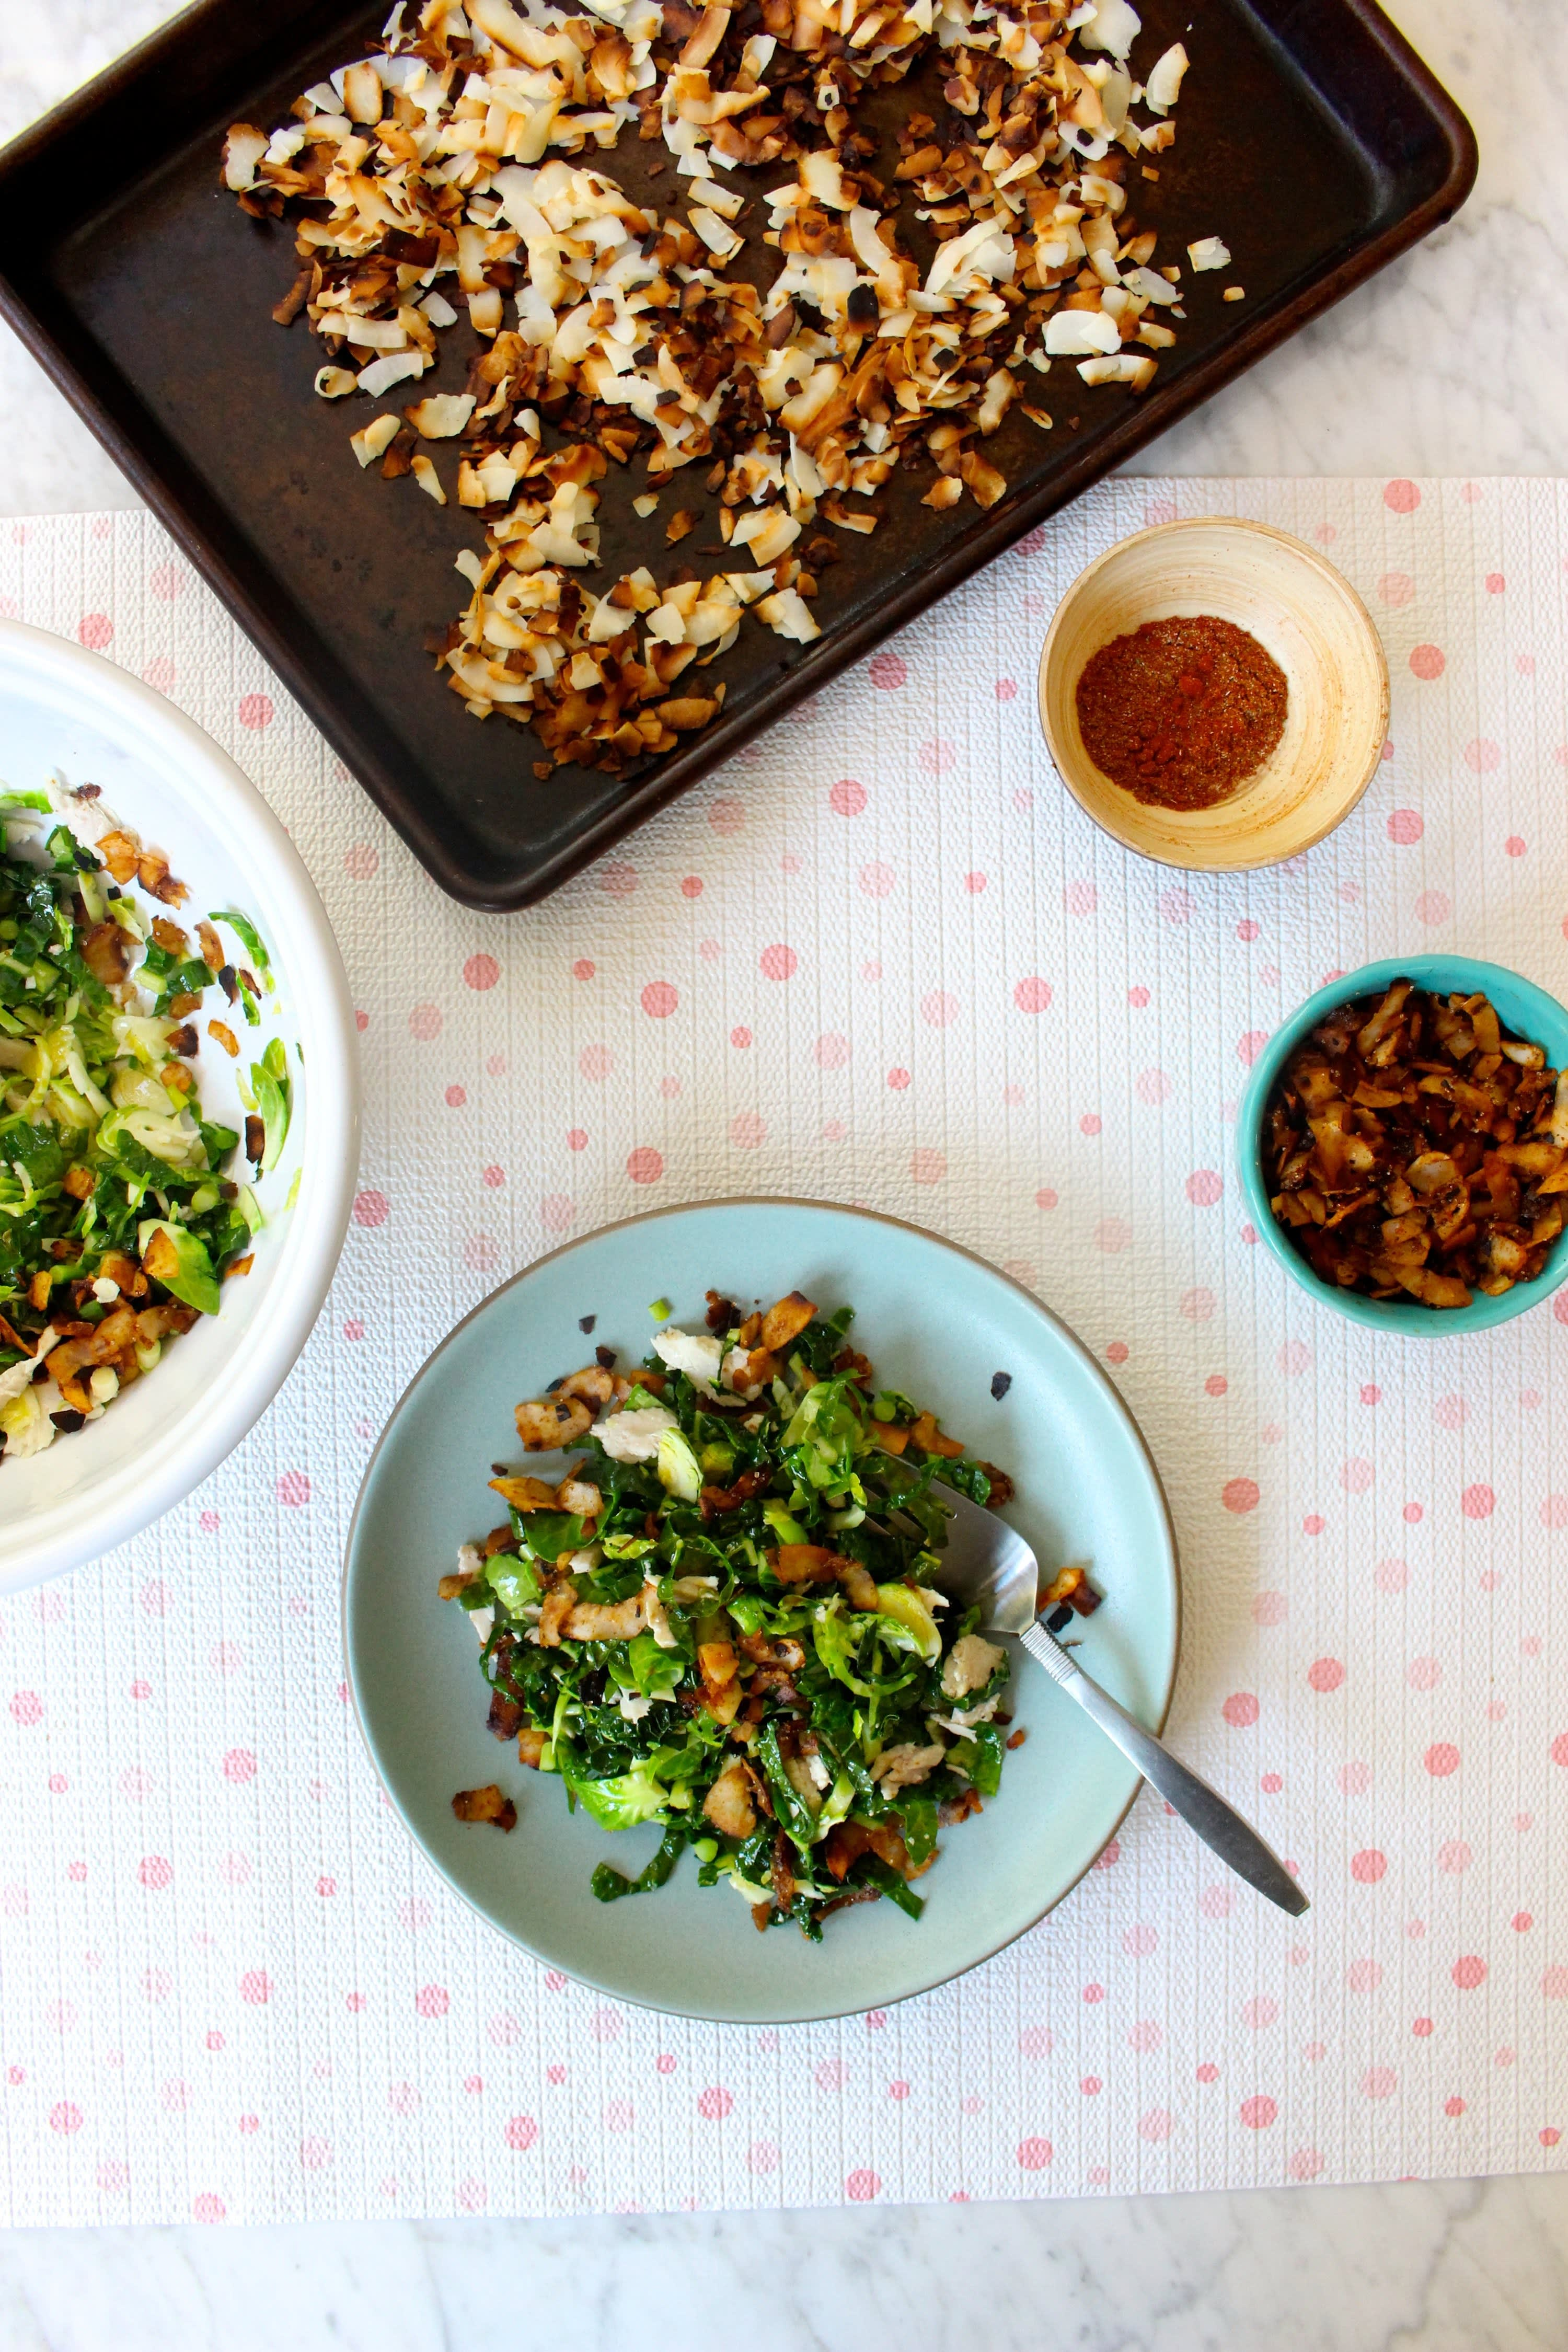 Coconut Bacon Bits and Salad